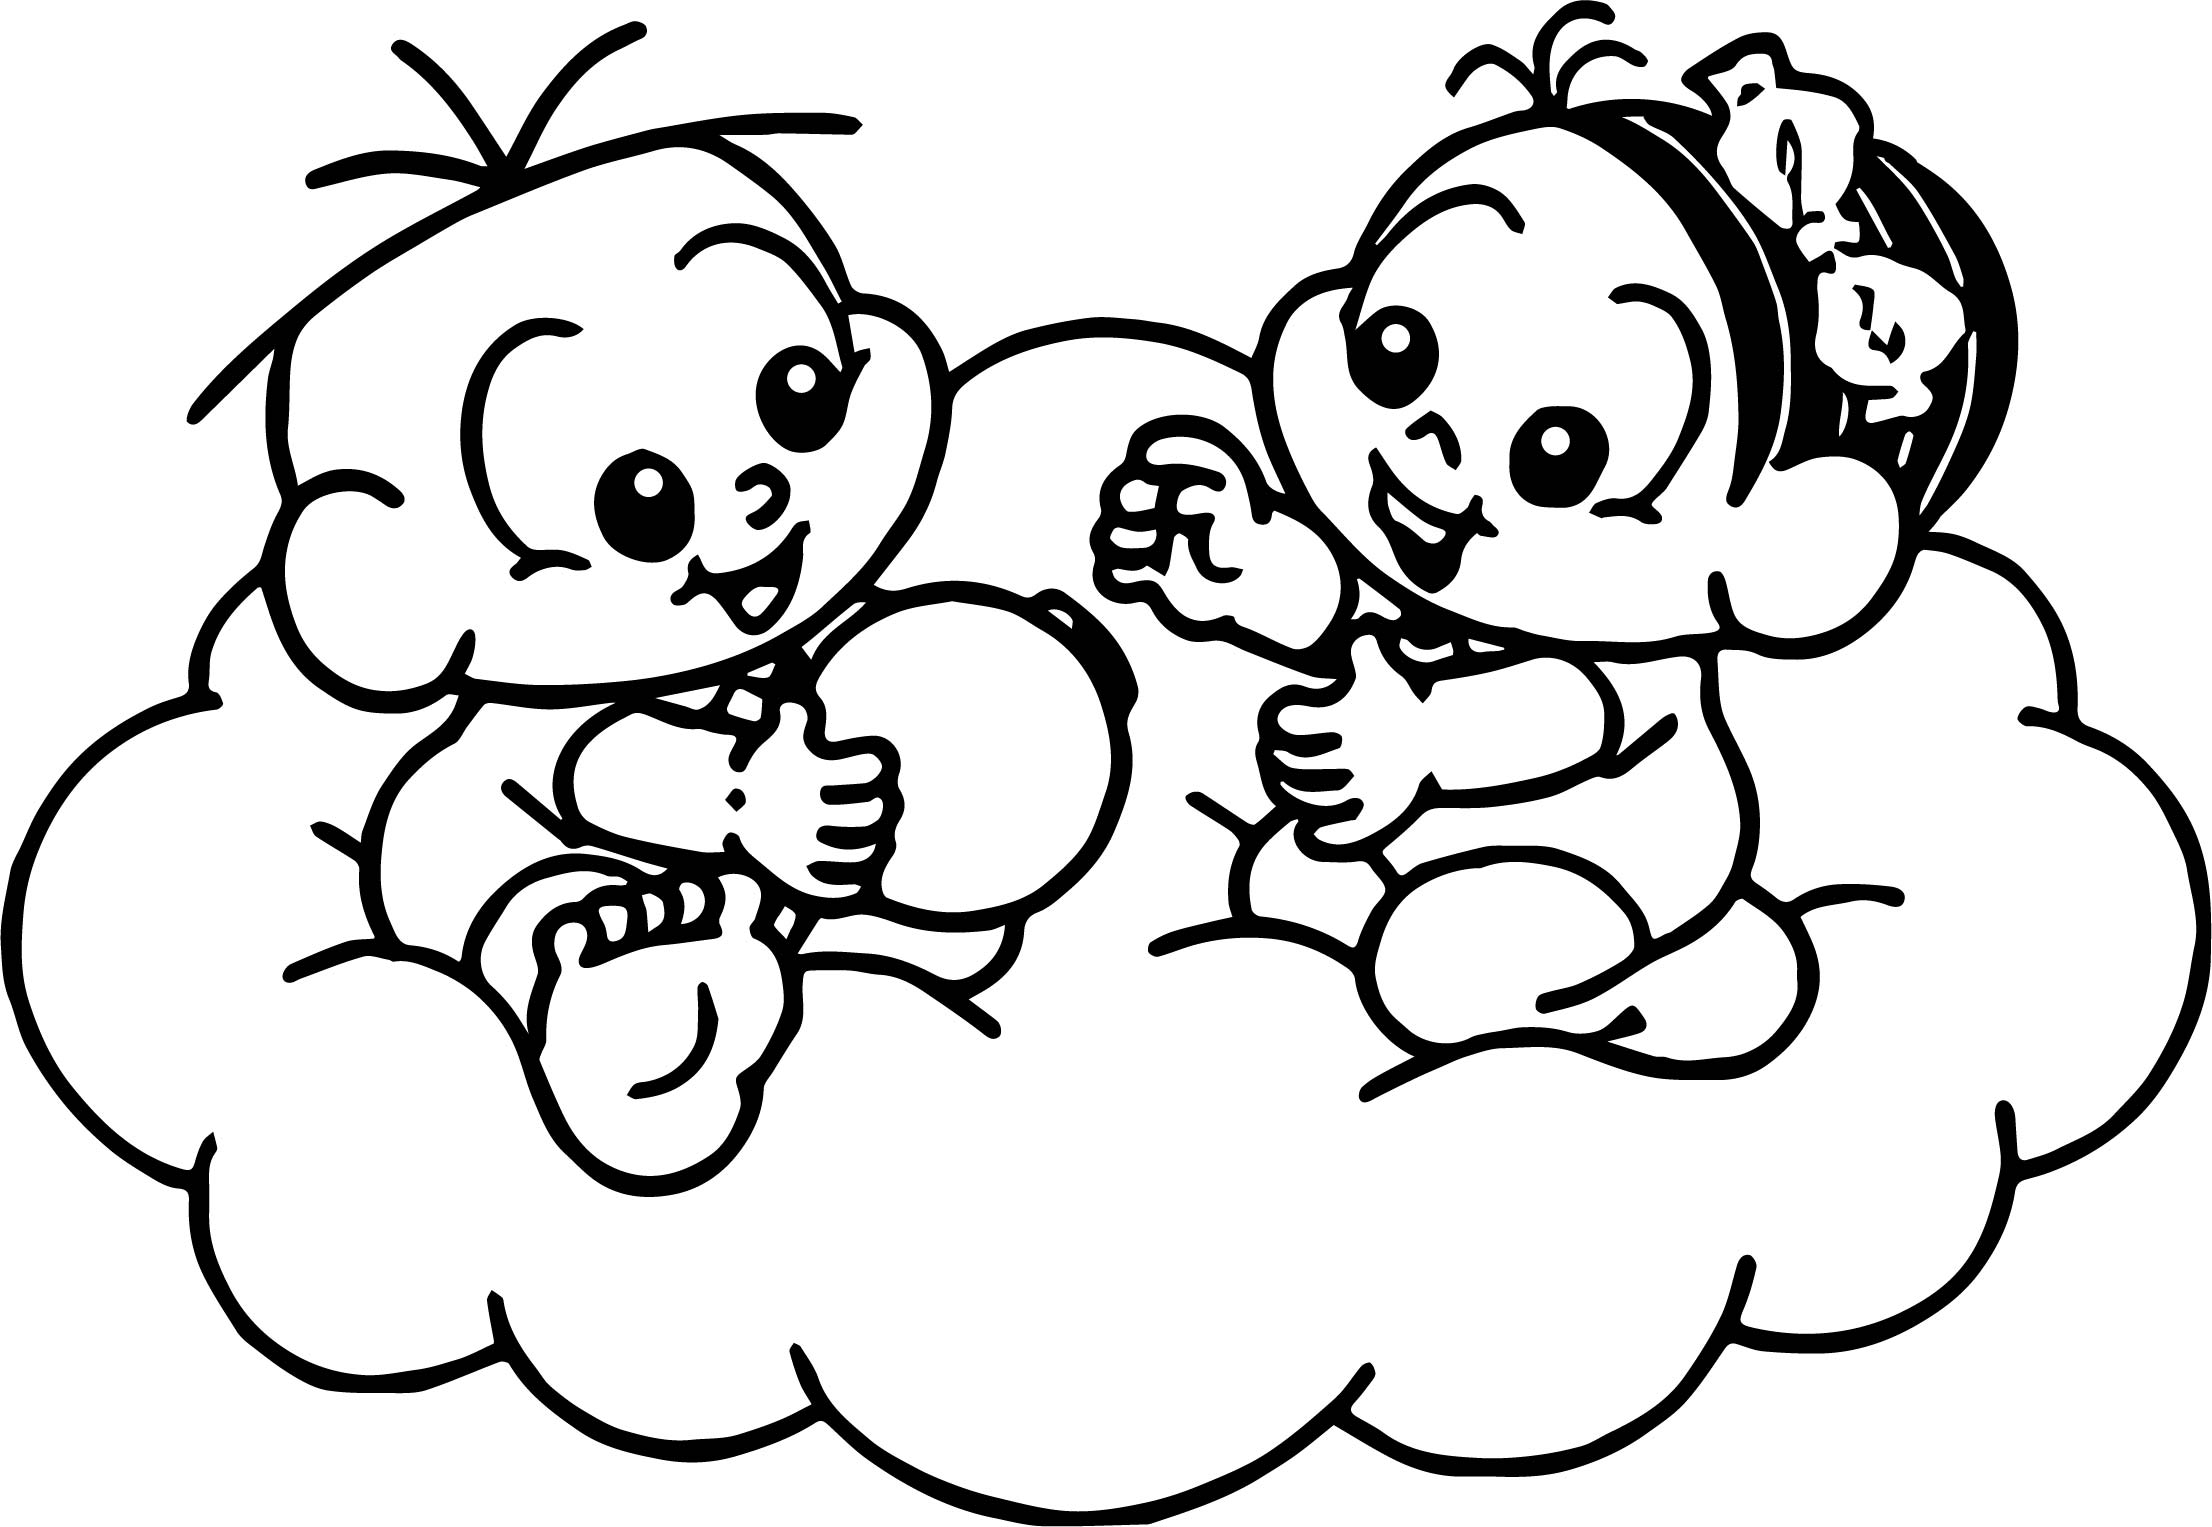 Game Of Monica To Paint Baby On Cloud Coloring Page